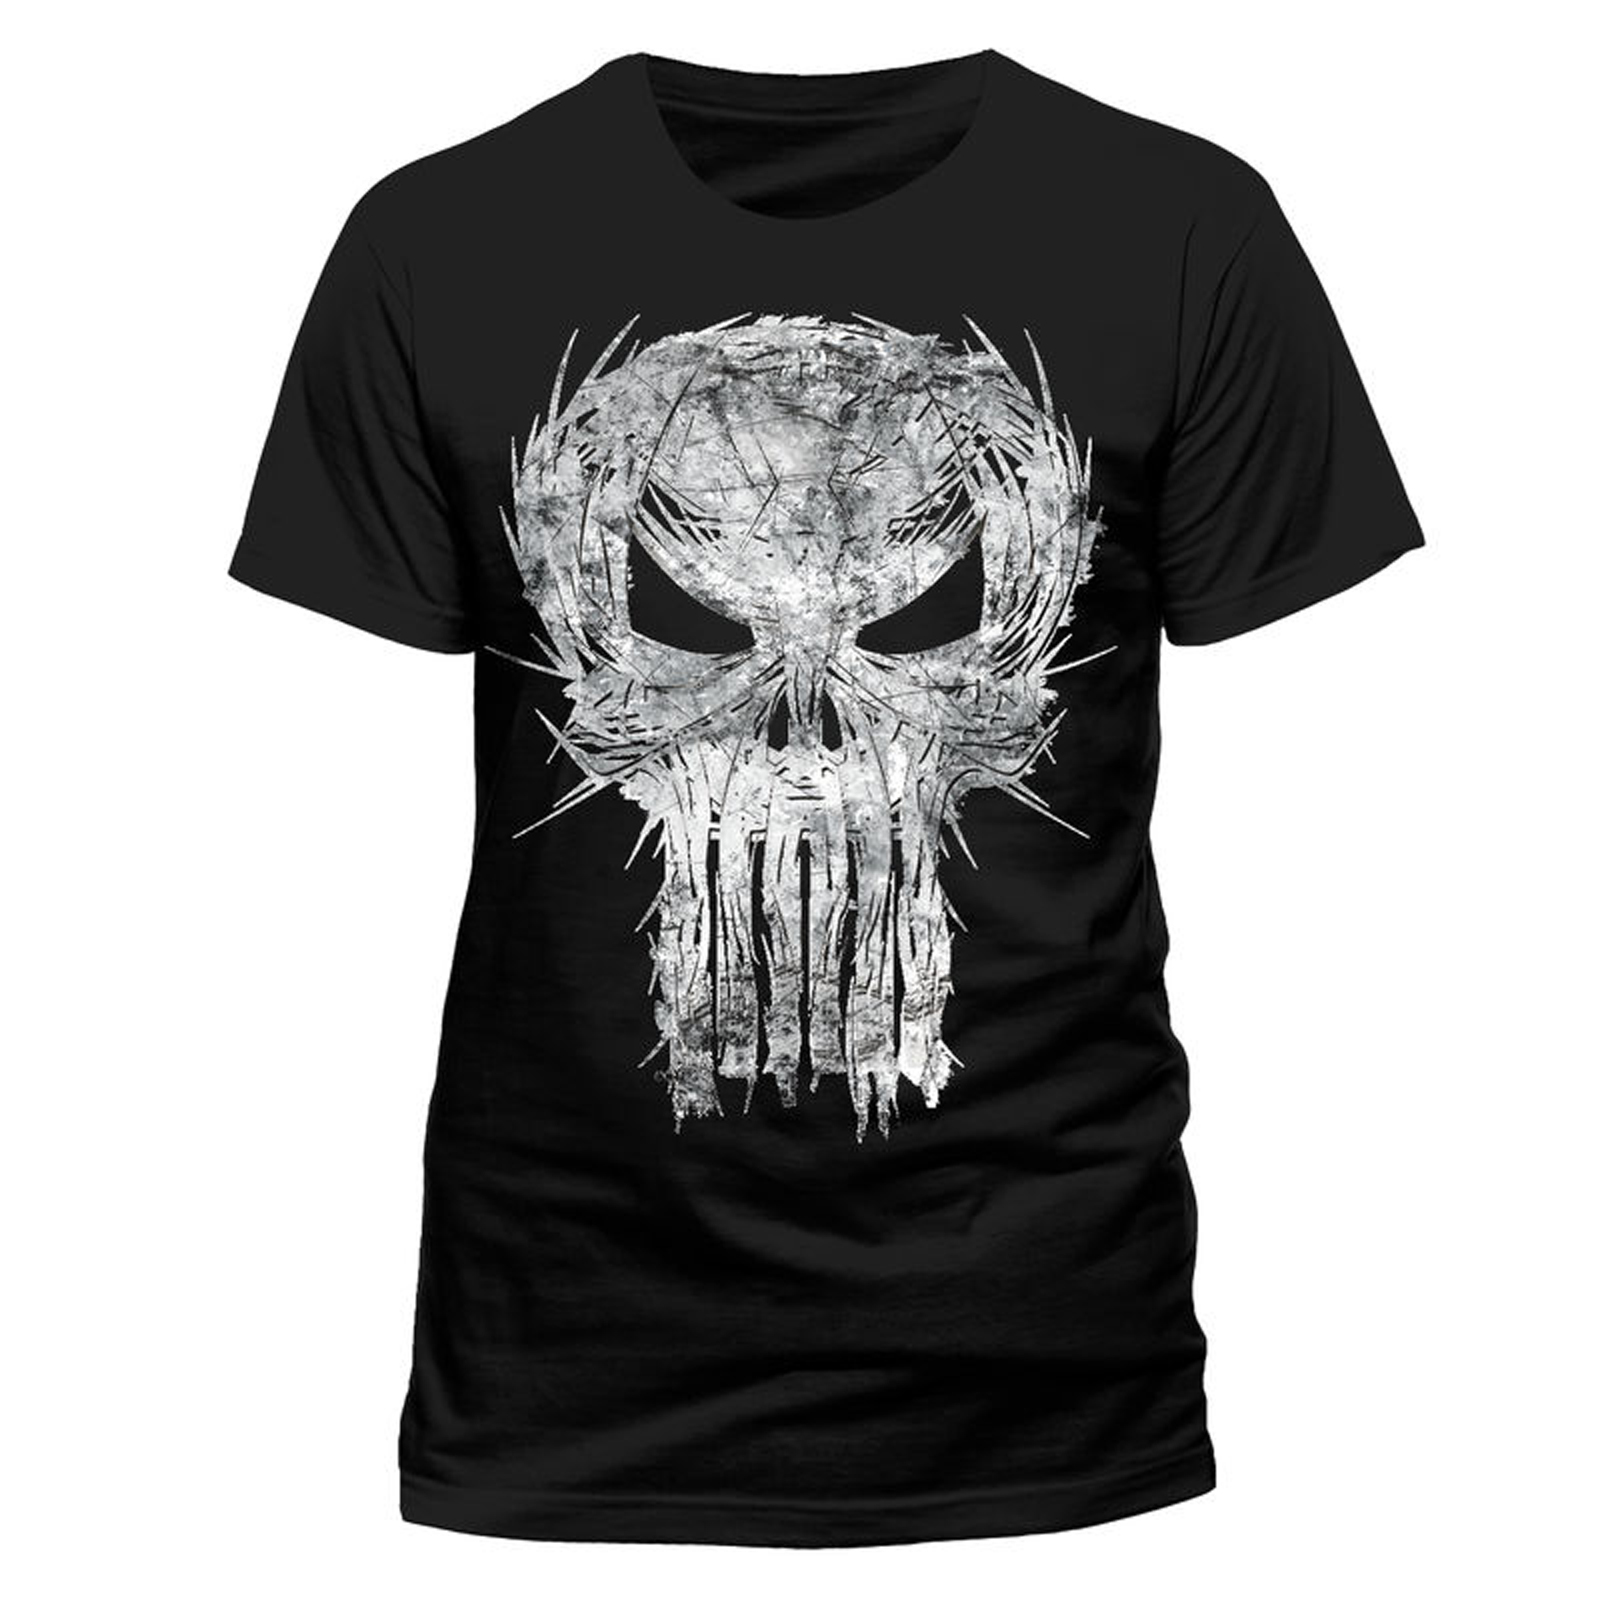 Men/'s Printed Punisher T Shirts Tee Top Skull Frank Castle New